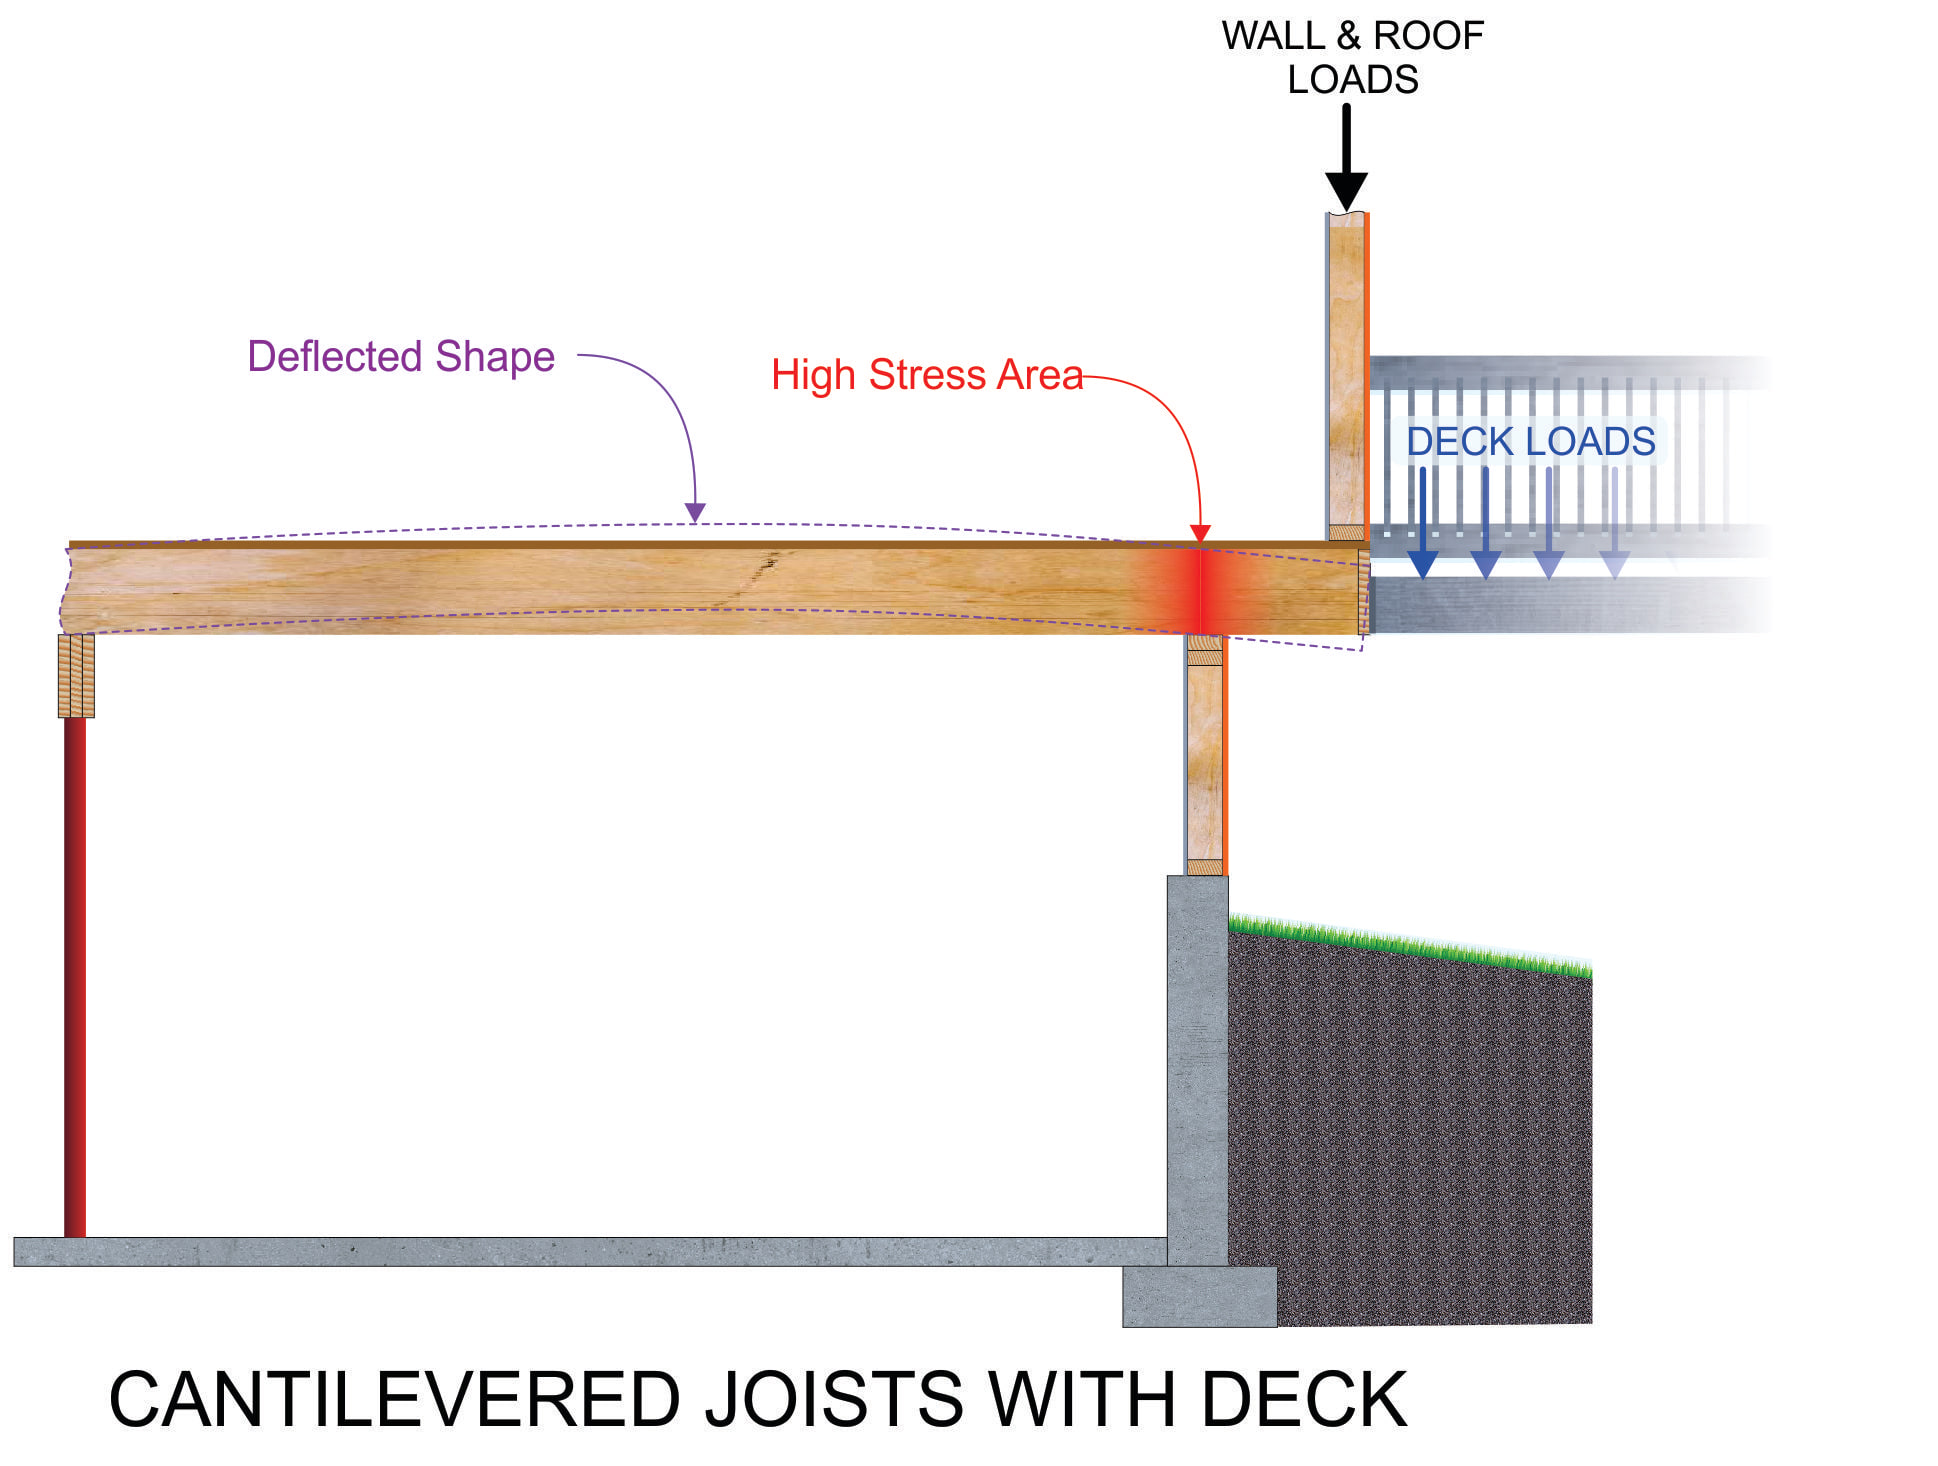 Cantilevered joists with deck.